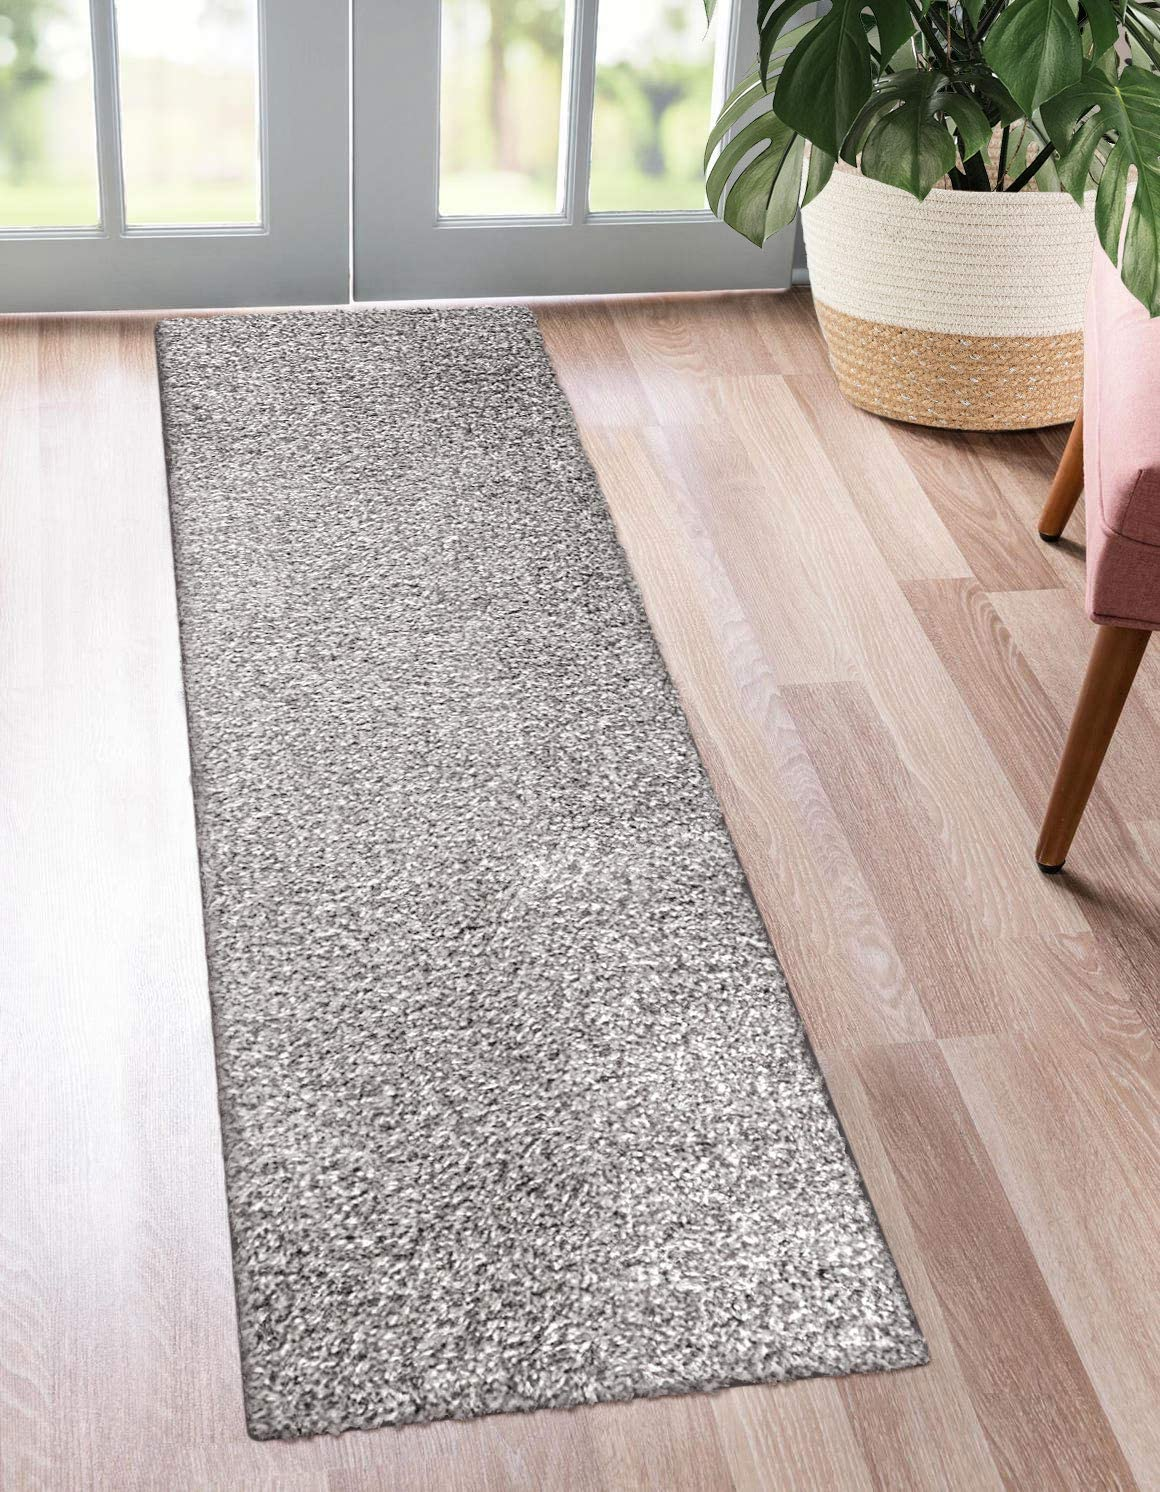 Kaluns Runner Rug, Hallway Runnert, Super Absorbent Rug Runner, Doormats for Entrance Way, Non Slip PVC Waterproof Backing, Machine Washable 2 x6 Runner, Gray